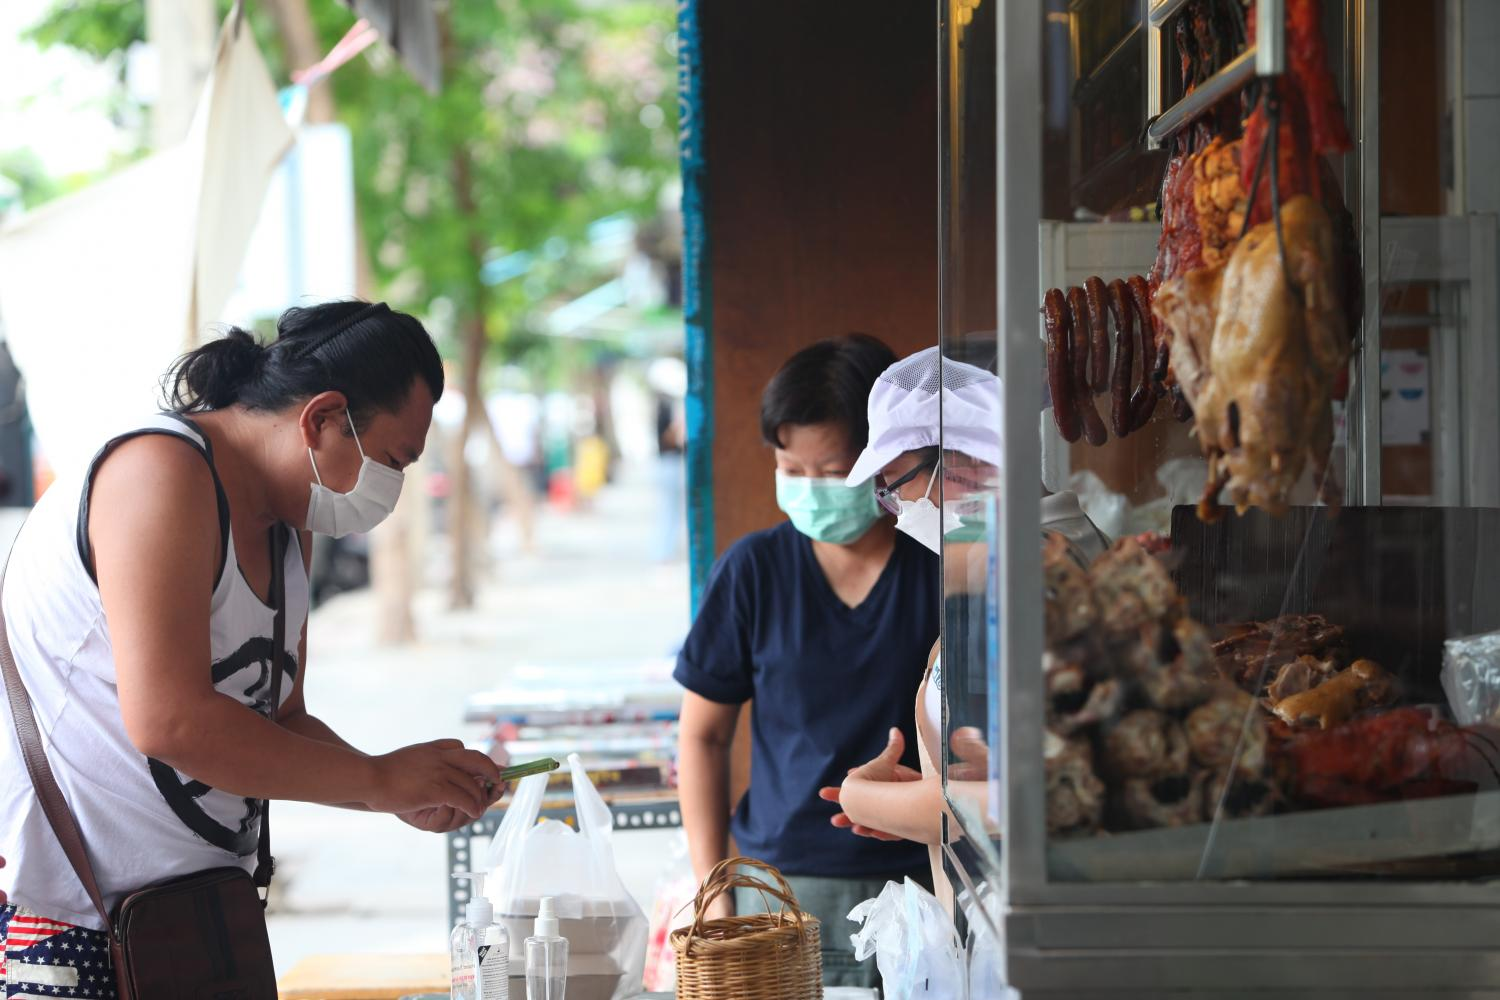 People make daily food purchases in the Ratchawat market during the pandemic.(Photo: Apichart Jinakul)